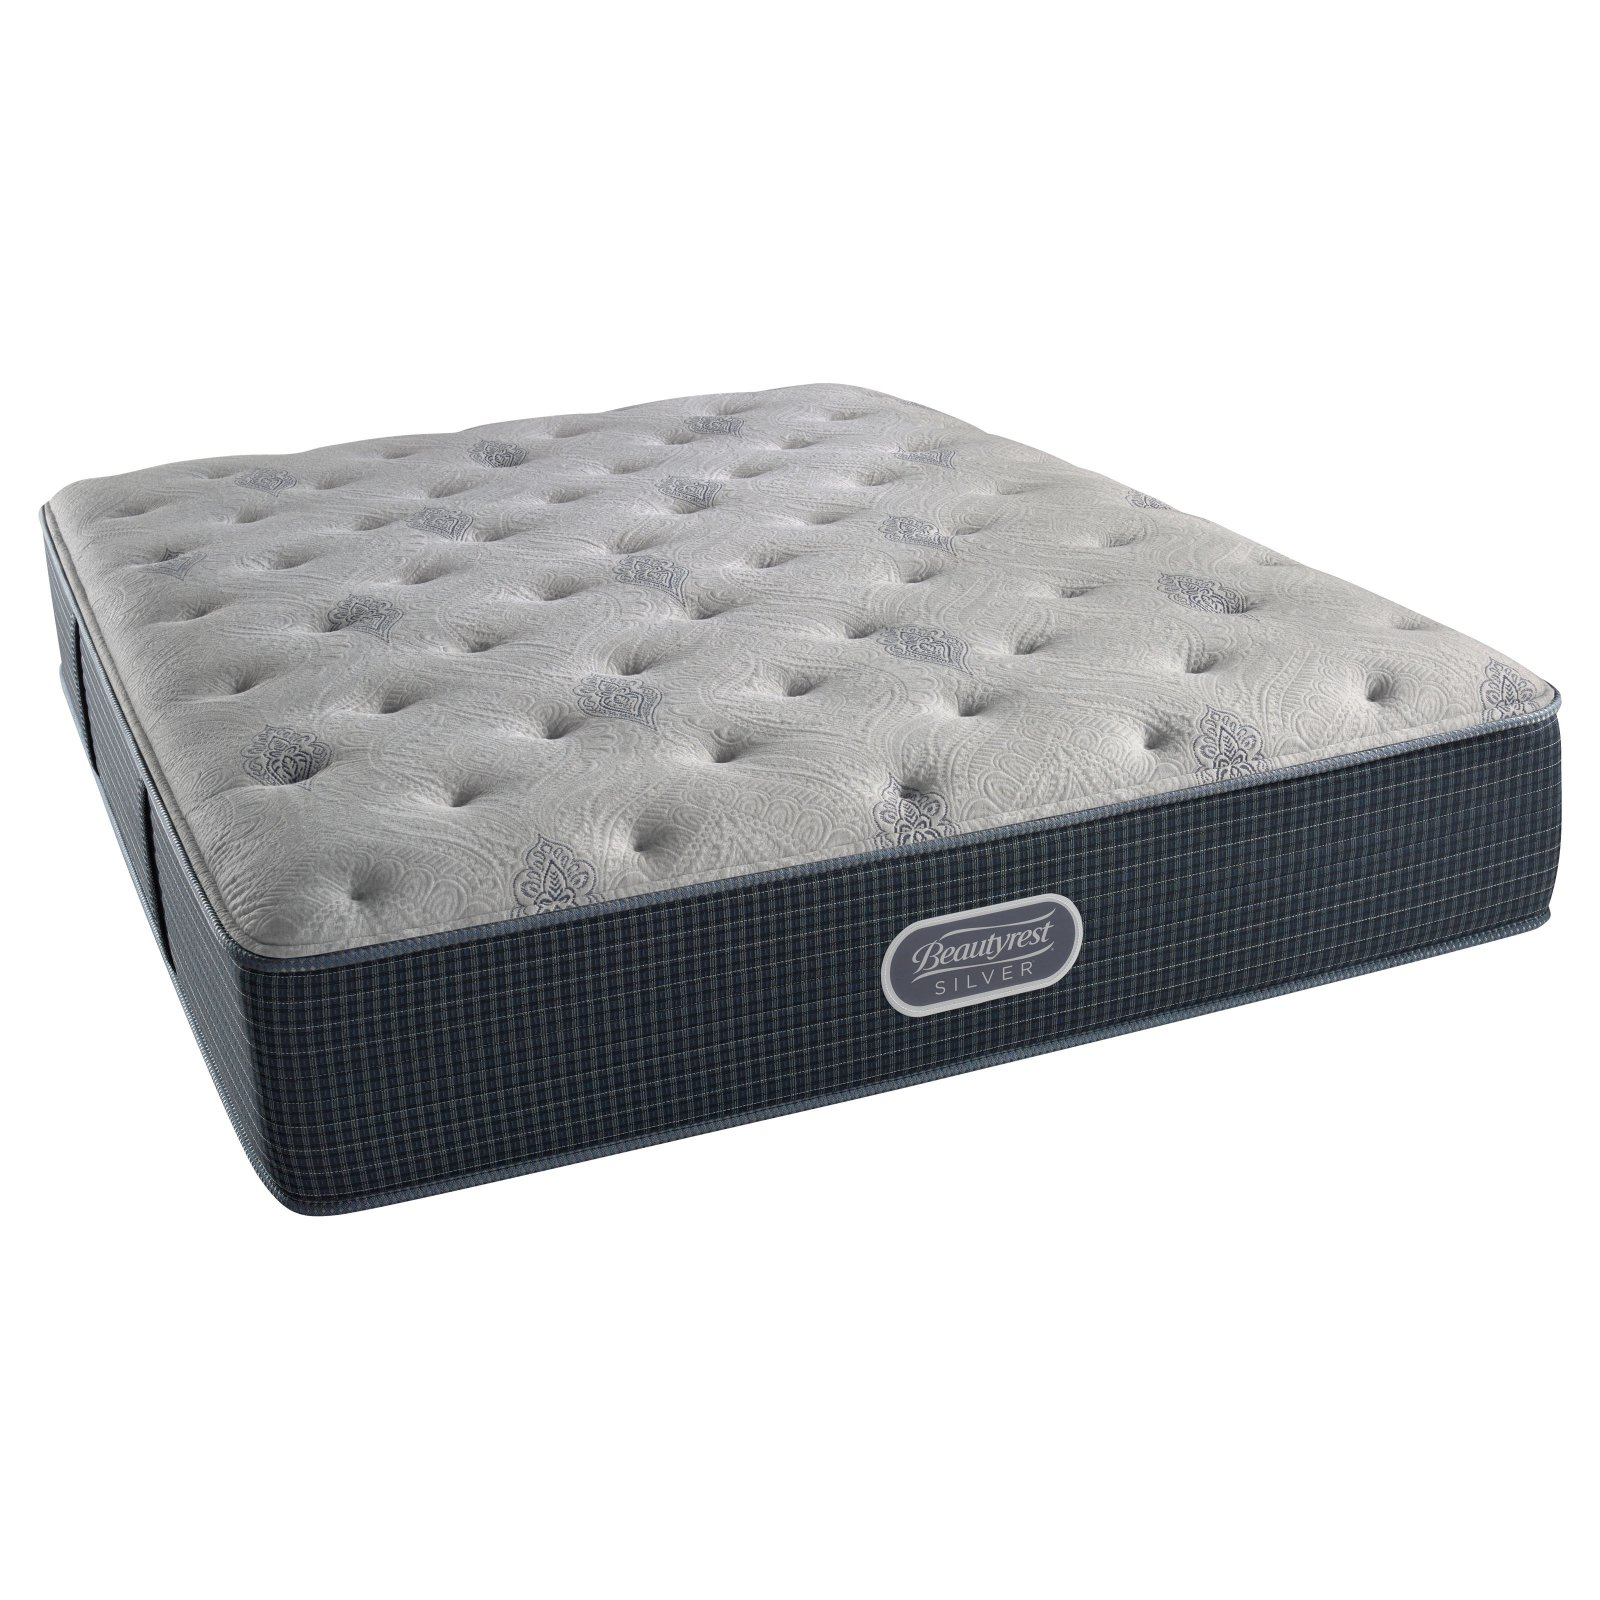 Beautyrest Silver Brewer Plush Mattress Set- In Home White-Glove Delivery Included & now